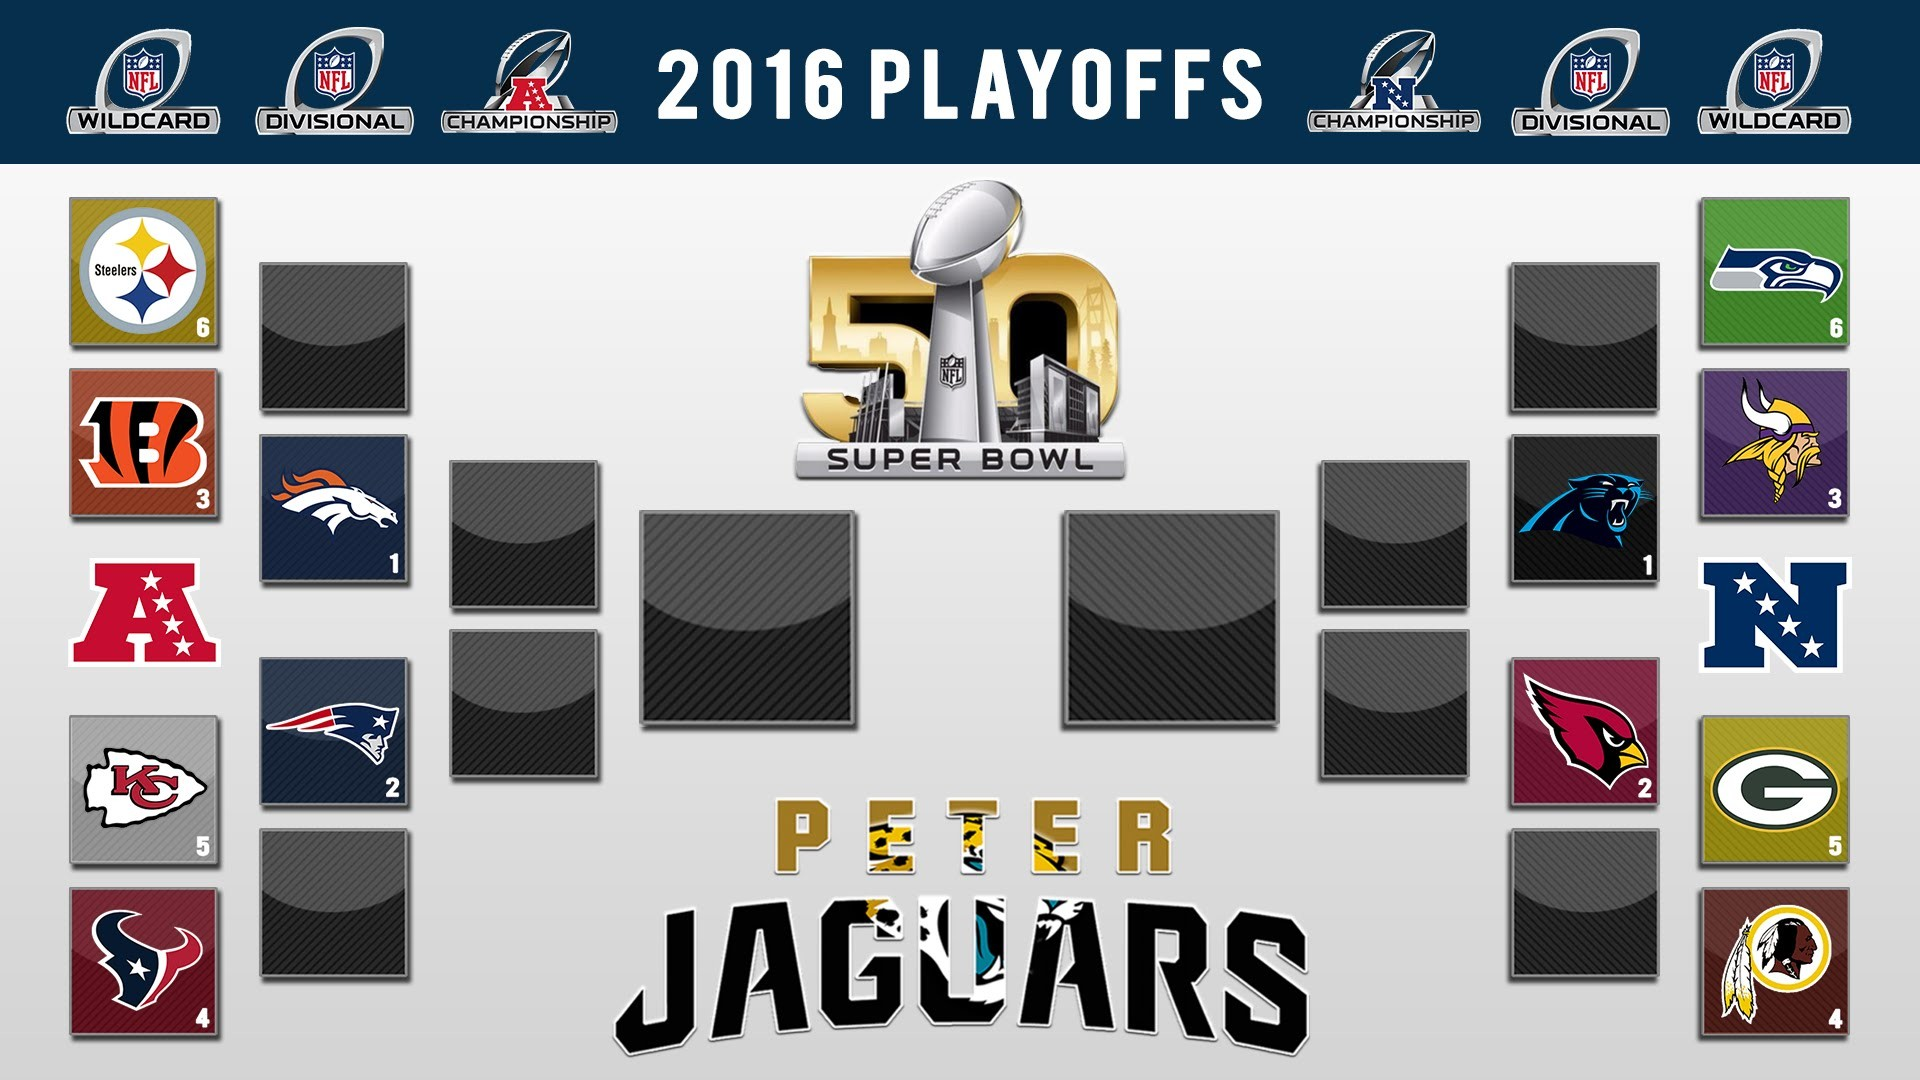 1920x1080 PETERJAGUARS' 2016 NFL PLAYOFF PREDICTIONS! FULL BRACKET + Super Bowl 50  Winner and All Games - YouTube